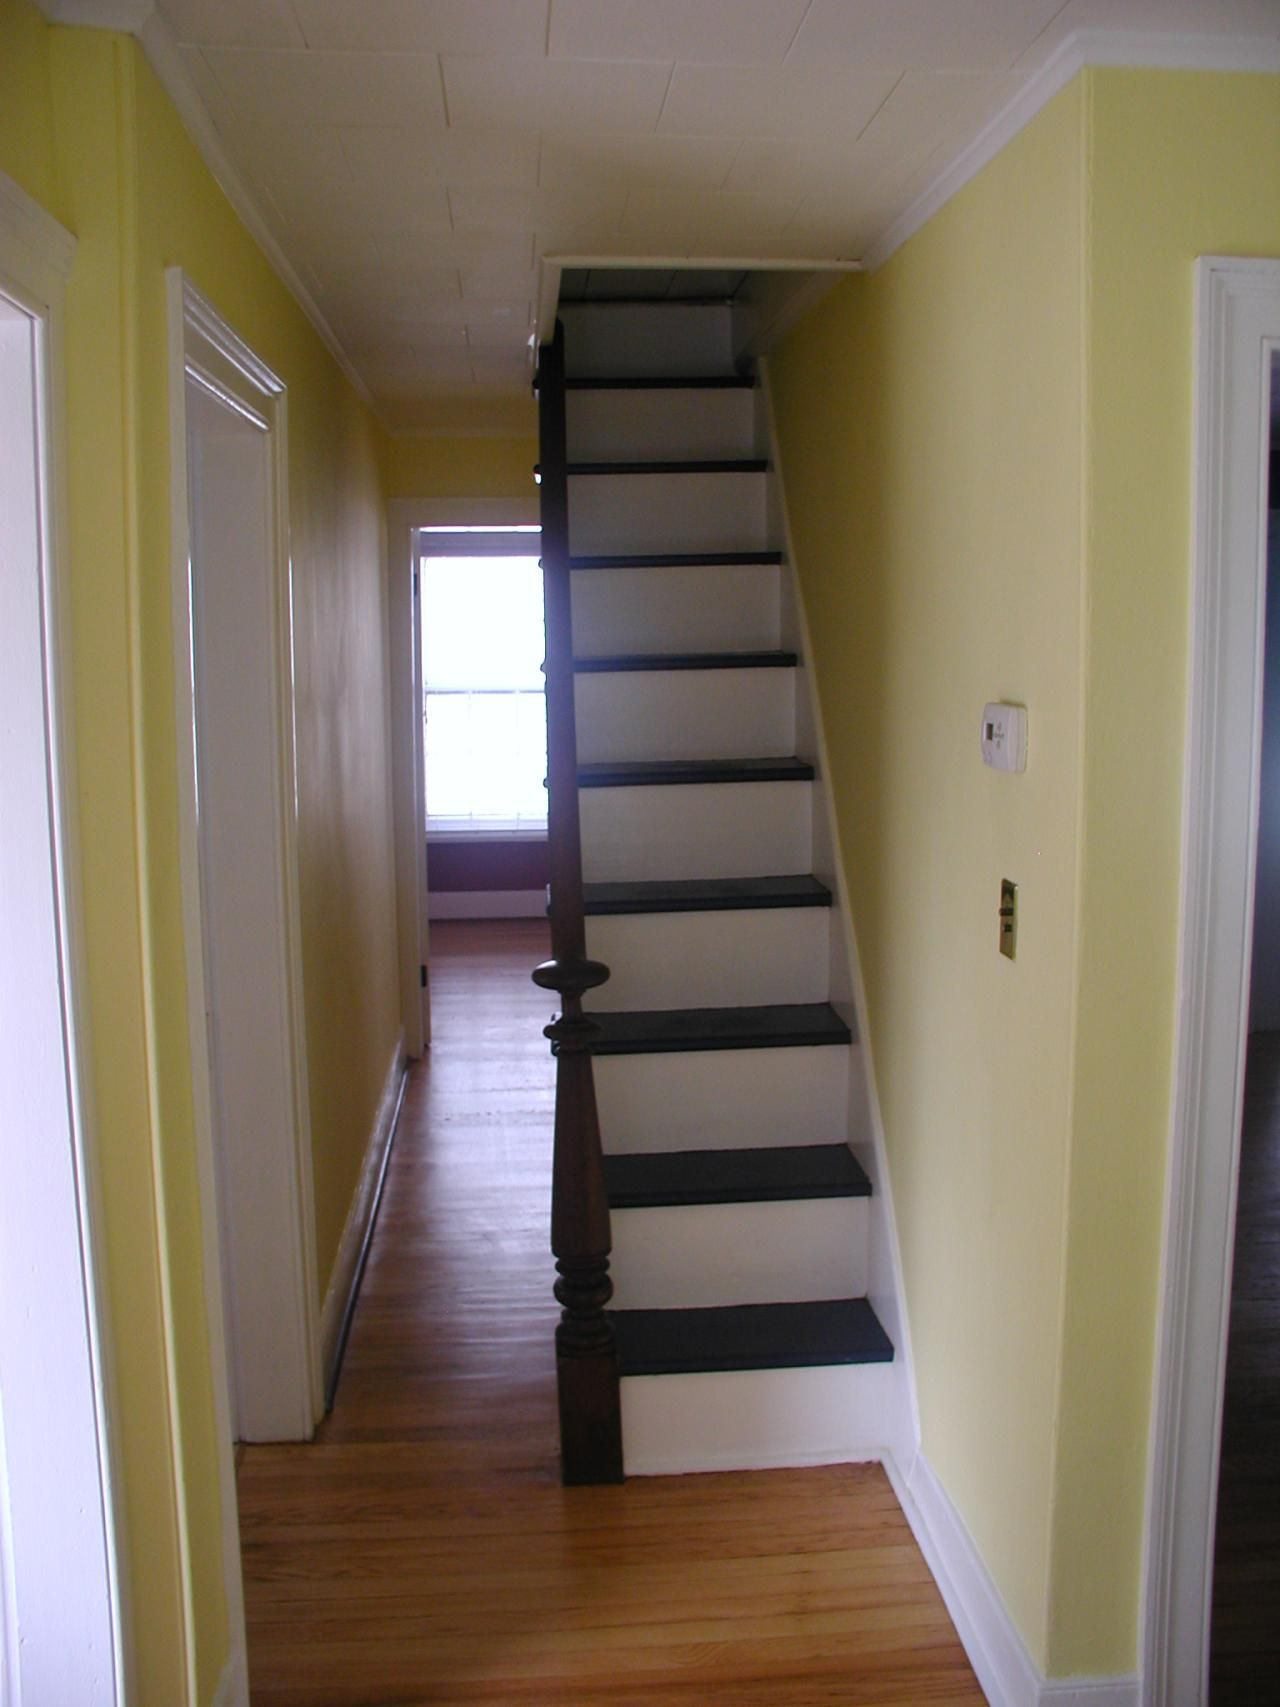 Staircase For Small Spaces Home Small Footprint Staircases Pinterest Attic Attic Stairs